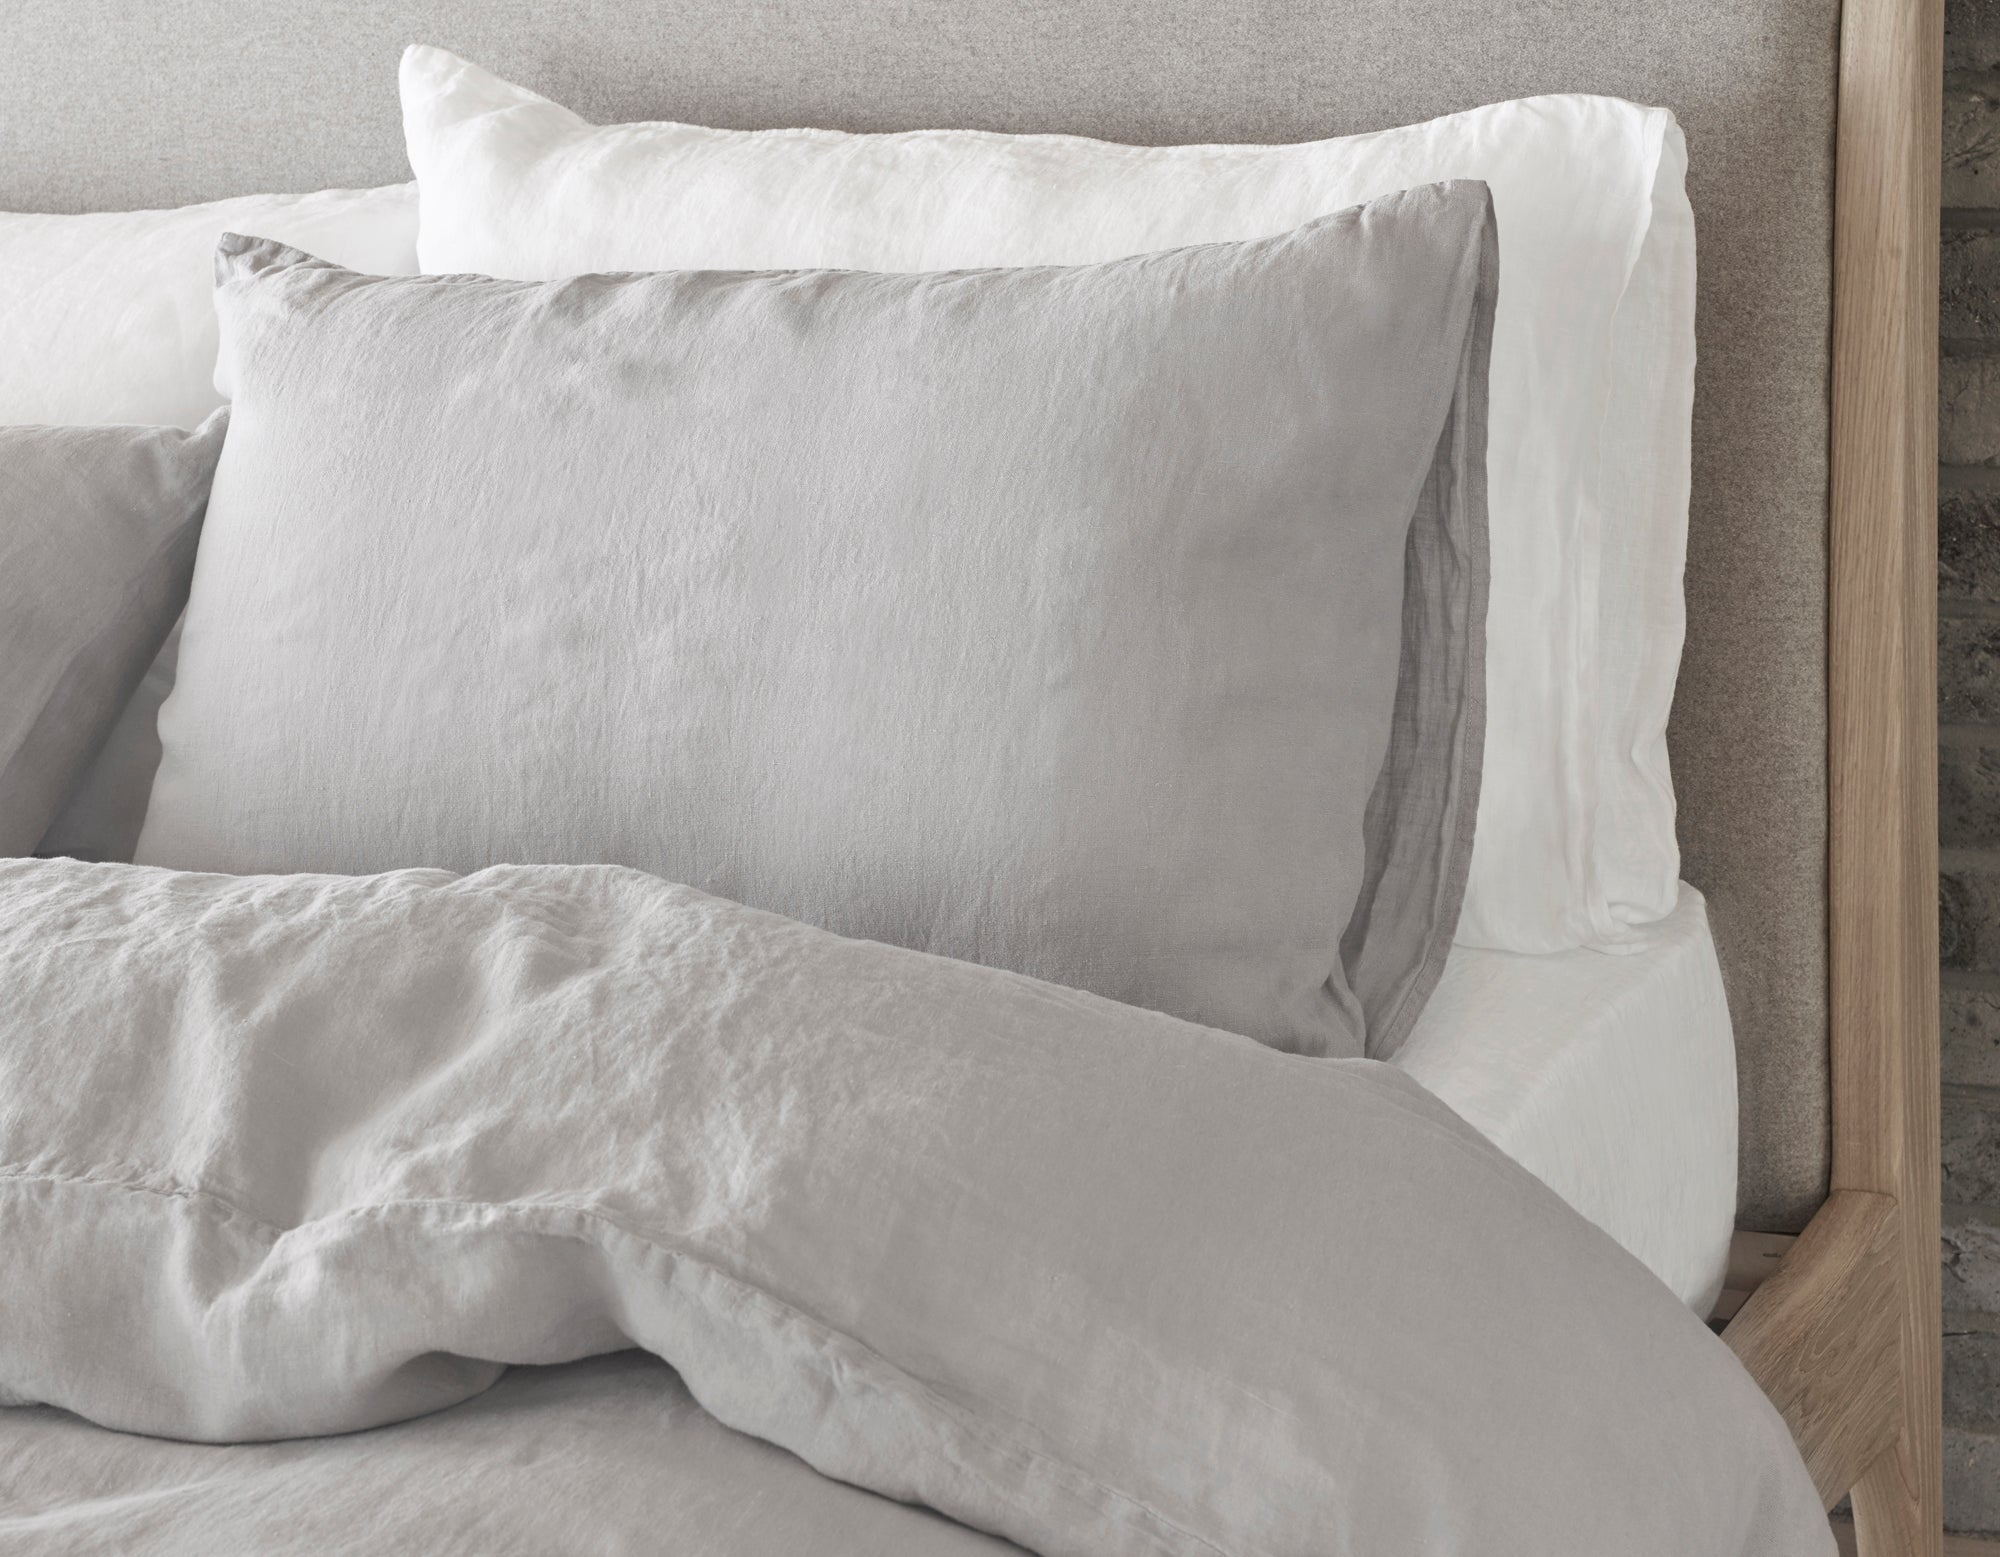 Linen Pillowcase Close Up in Calm Grey | scooms